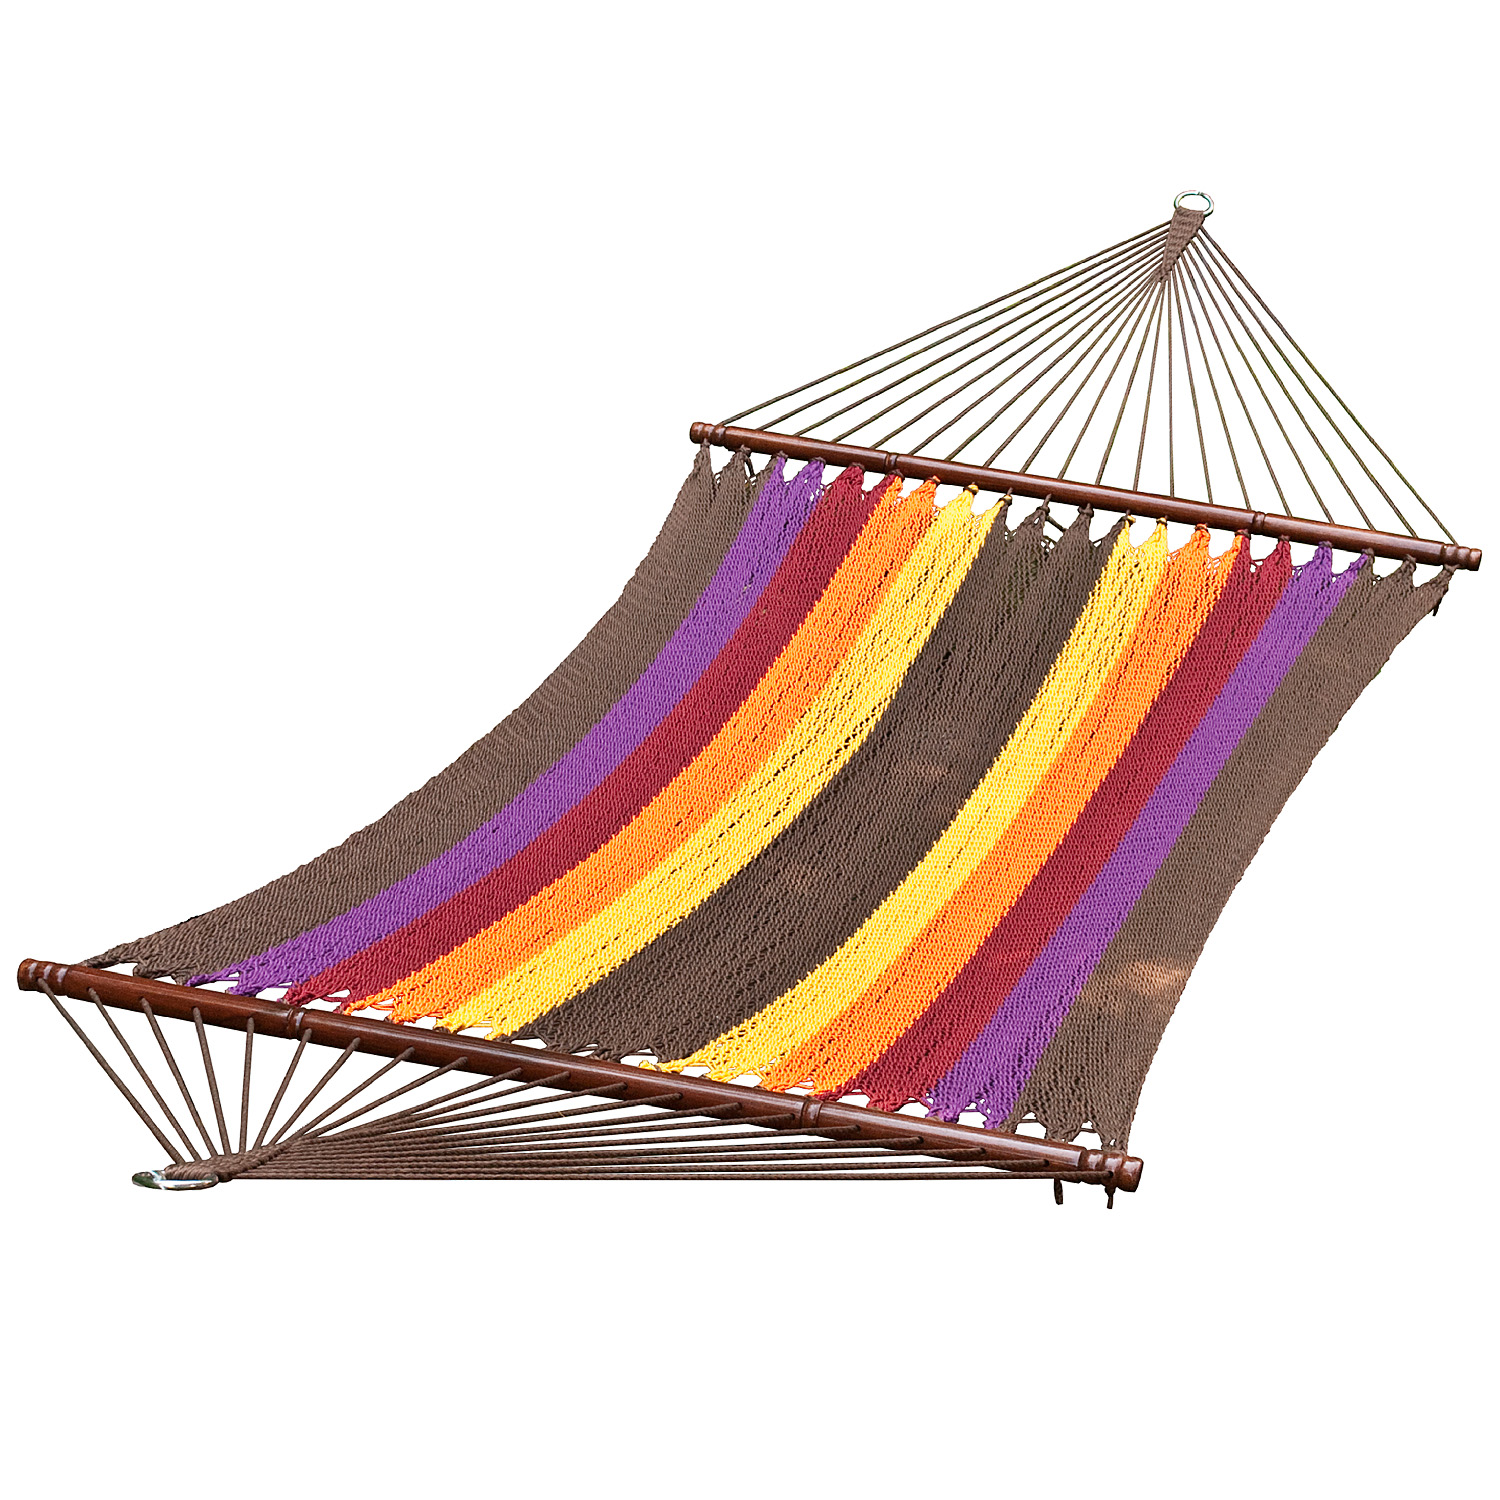 (Open Box) 13 ft. 2-Point Tight Weave Soft Polyester Caribbean Rope Hammock, Multi Color